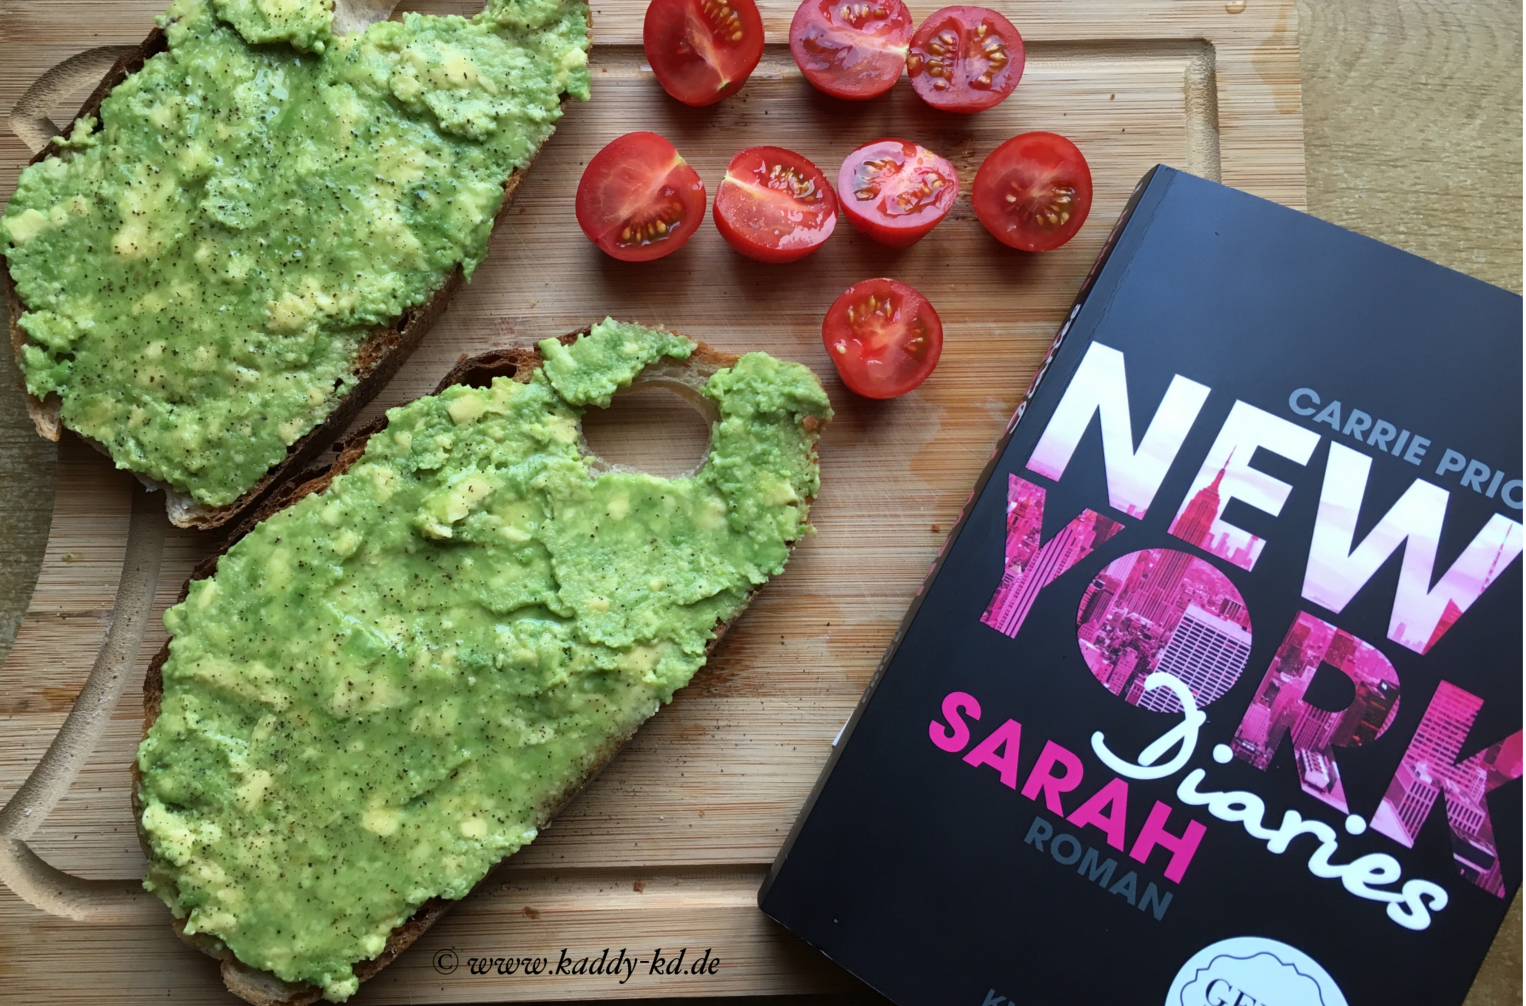 New York Diaries Sarah und Avocadobrot